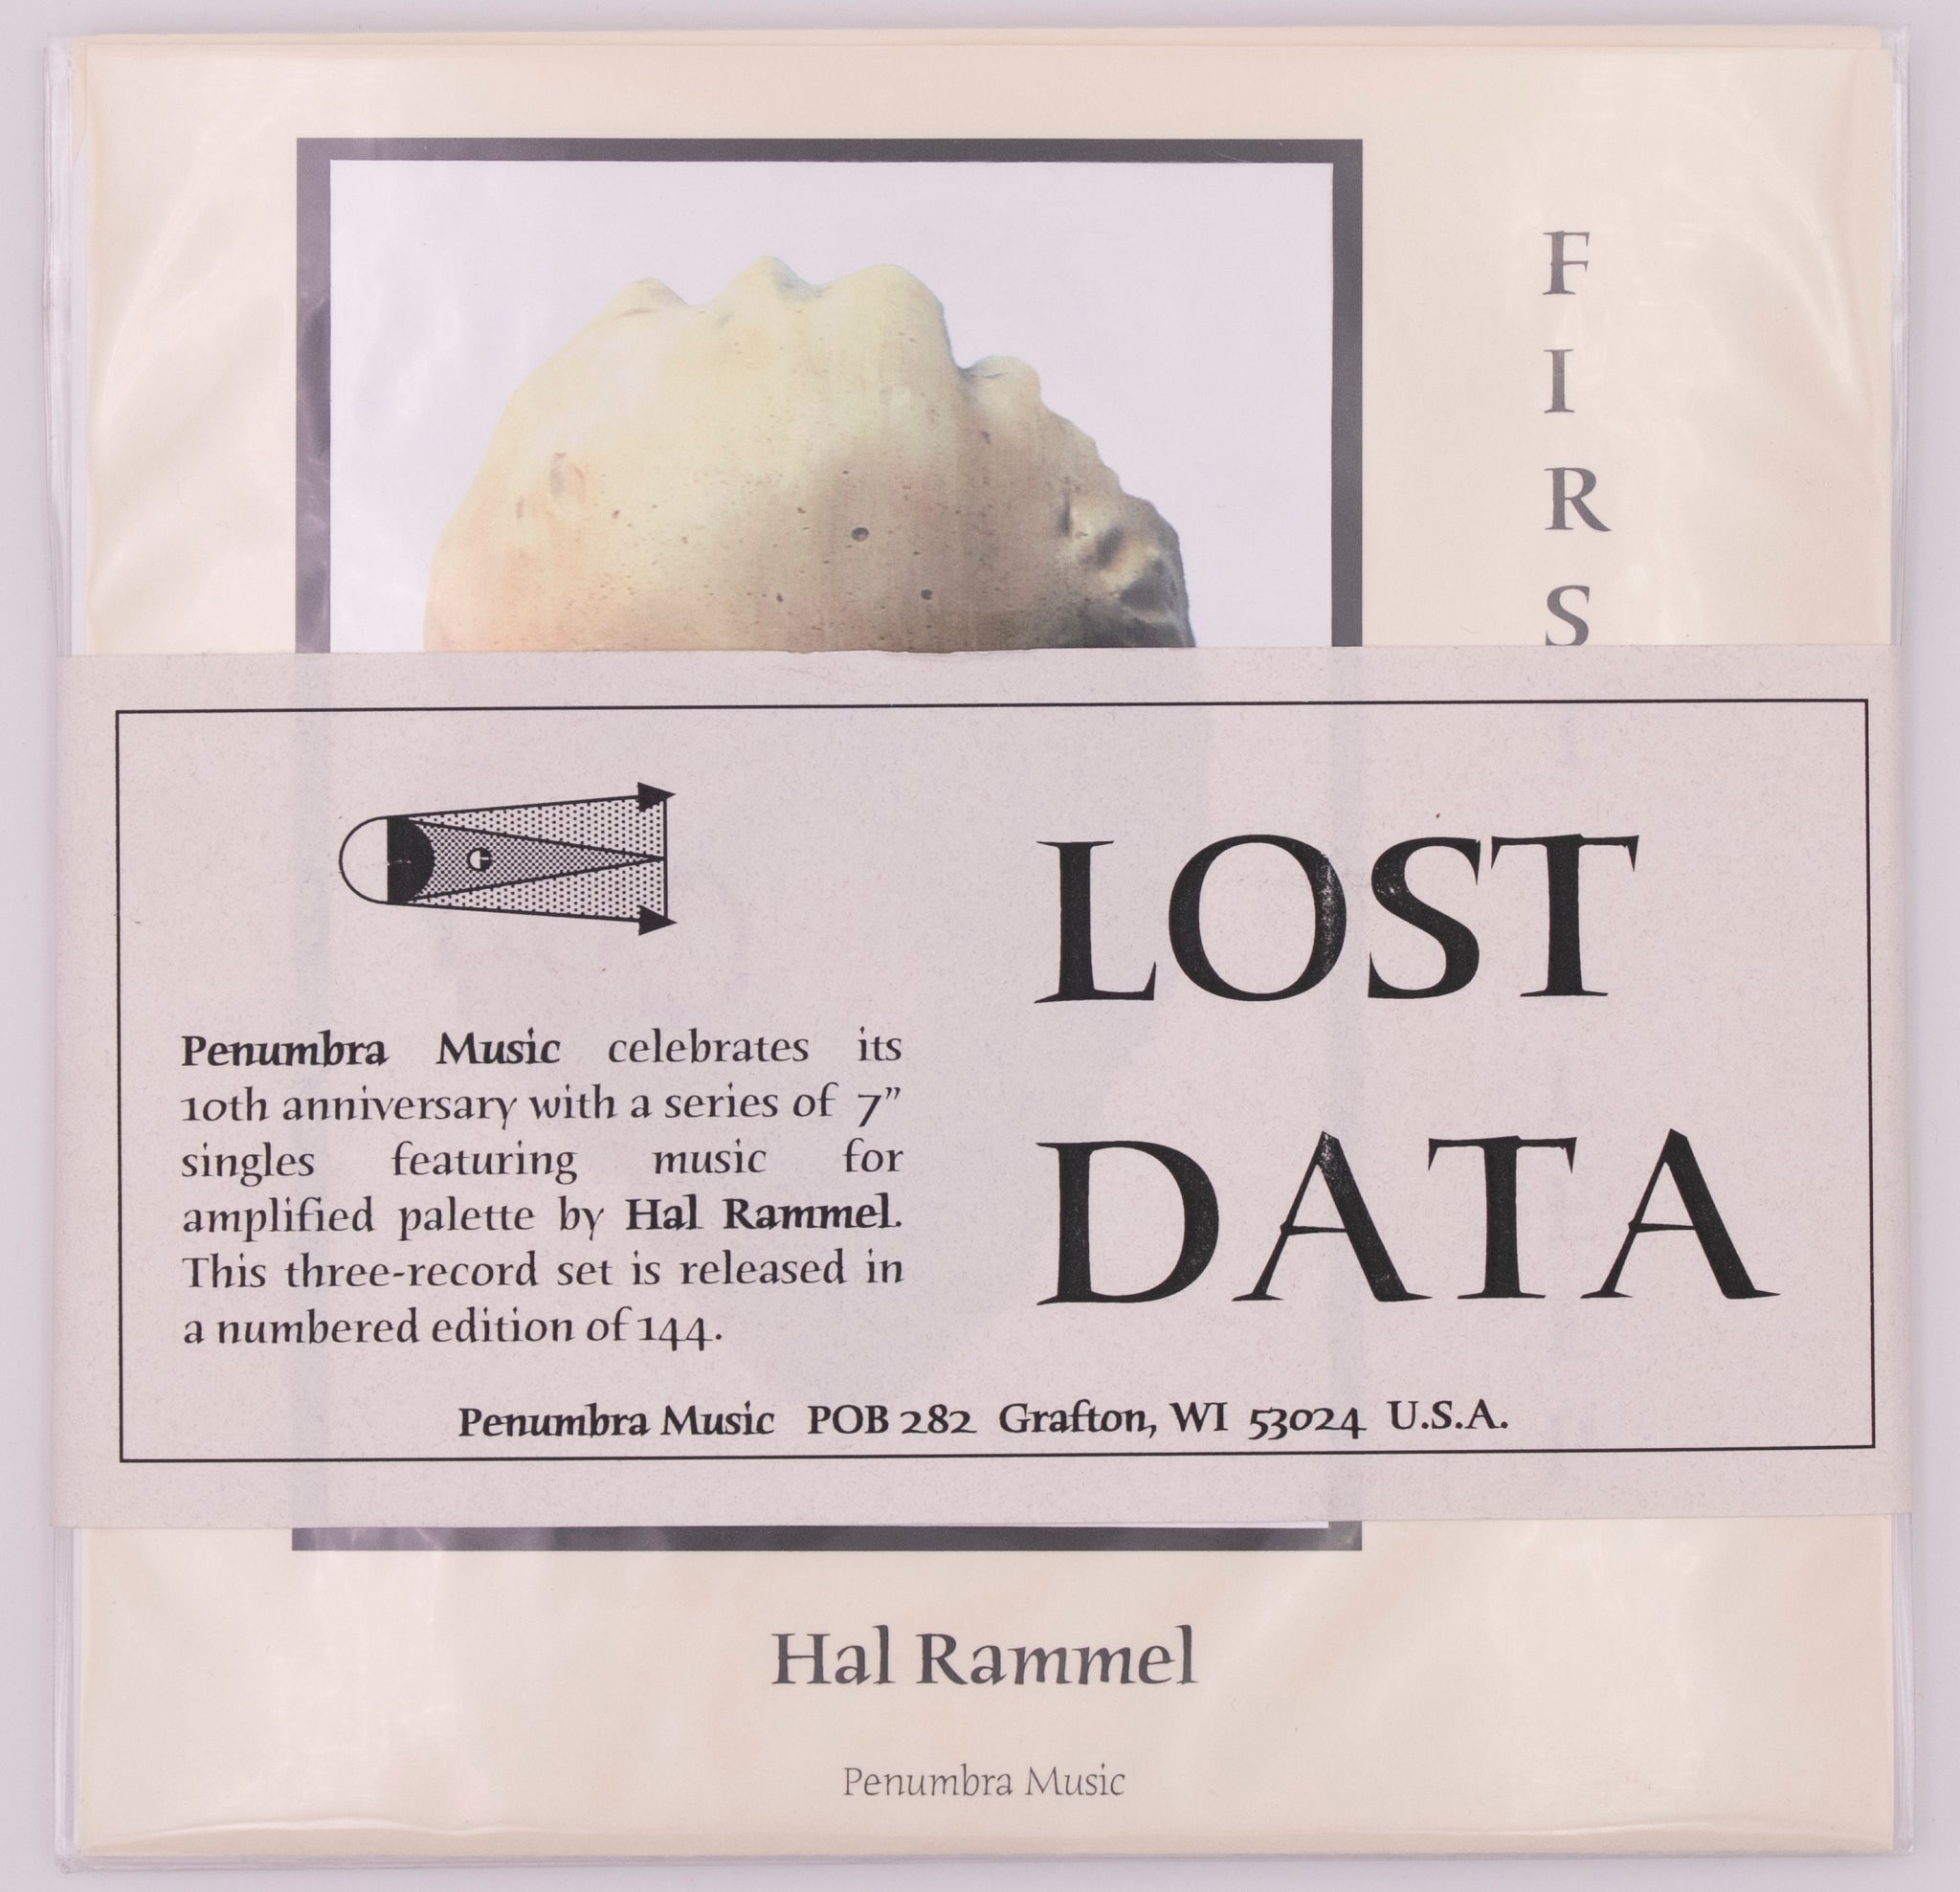 "Lost Data 7"" Series"